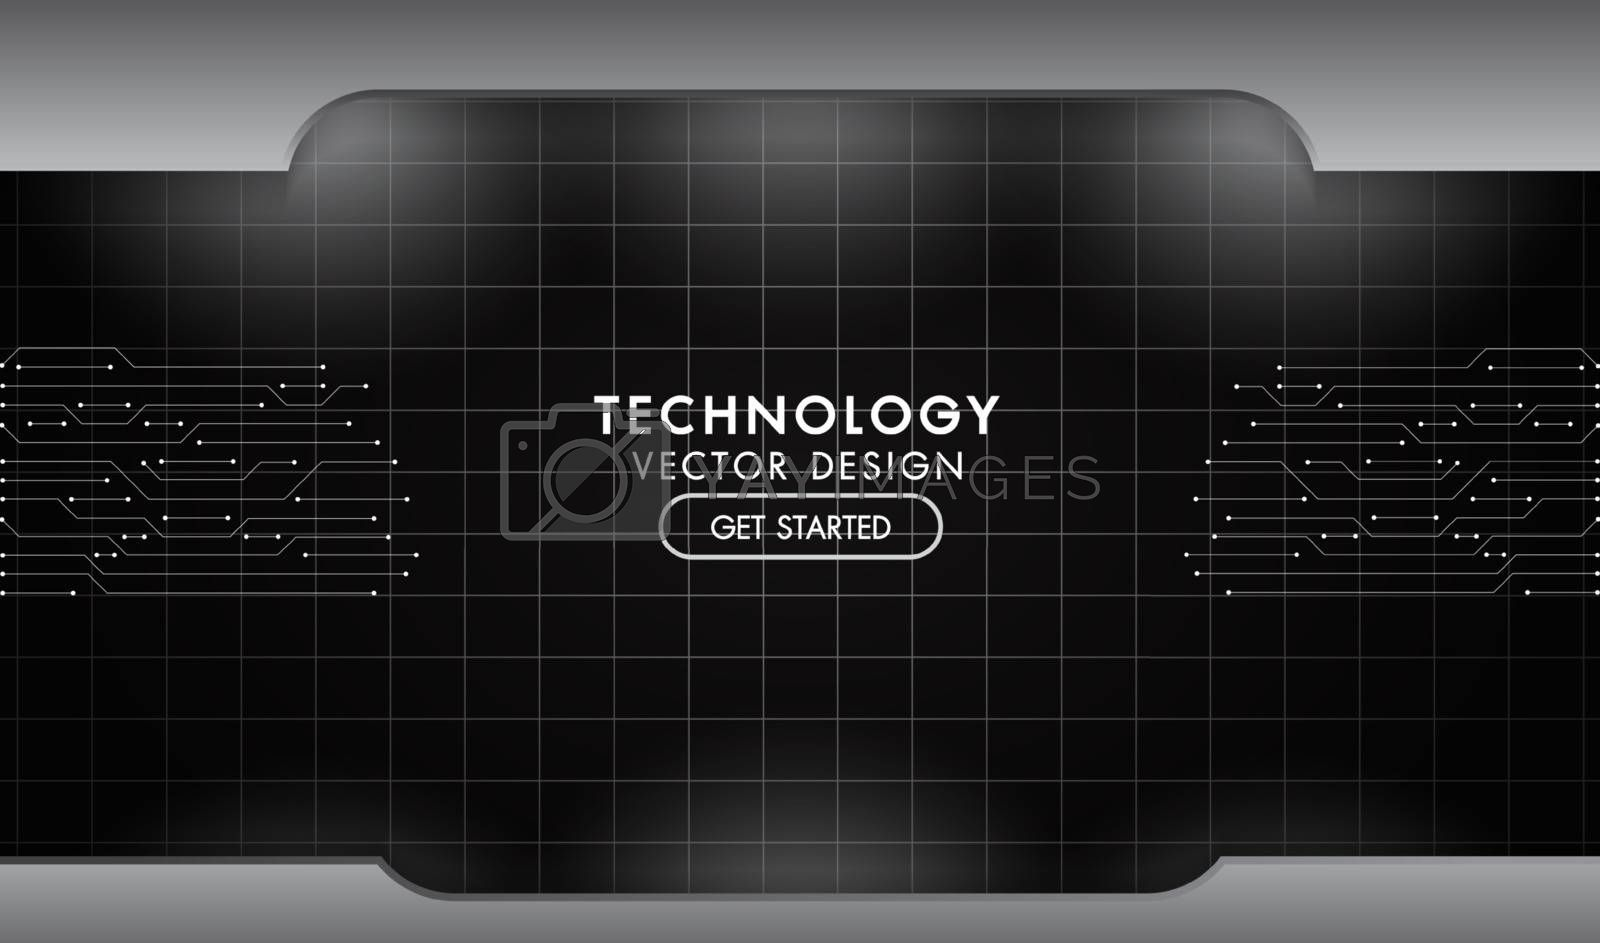 Metal black and grey background technology network texture aluminium steel plates with lighting abstract design vector template.